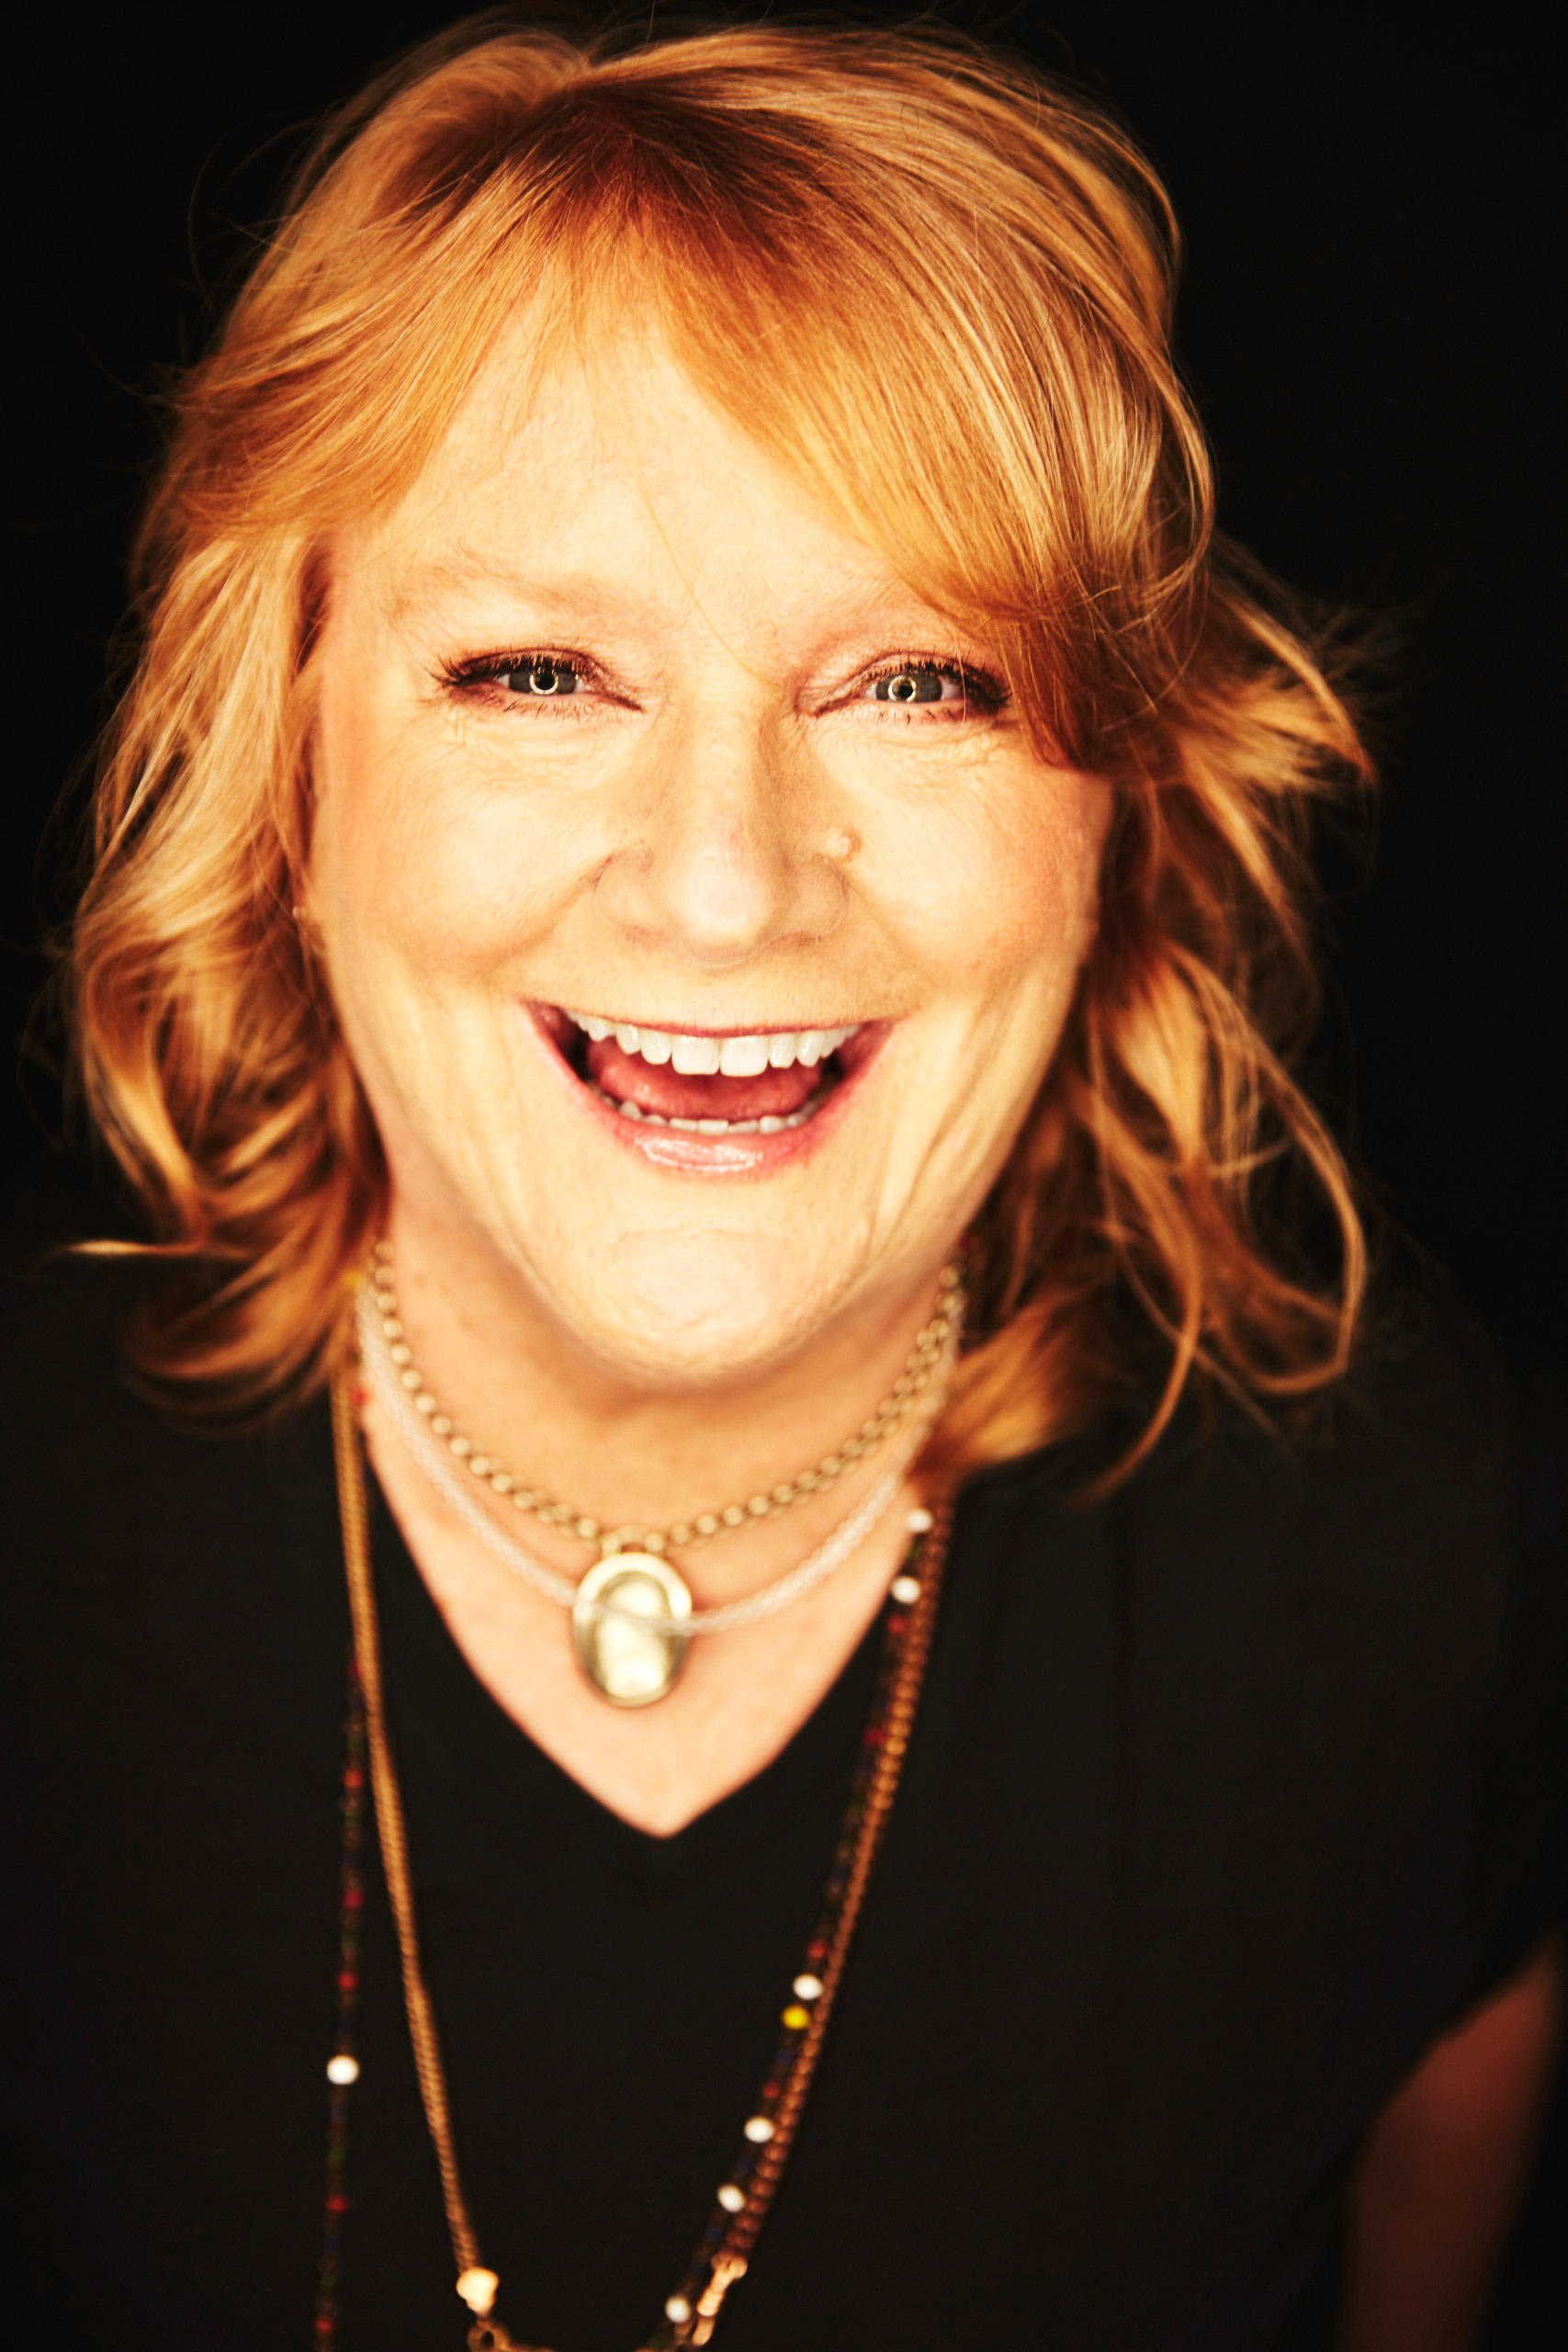 live show news emily saliers of indigo girls to appear on mountain stage oct 22 on sale now. Black Bedroom Furniture Sets. Home Design Ideas